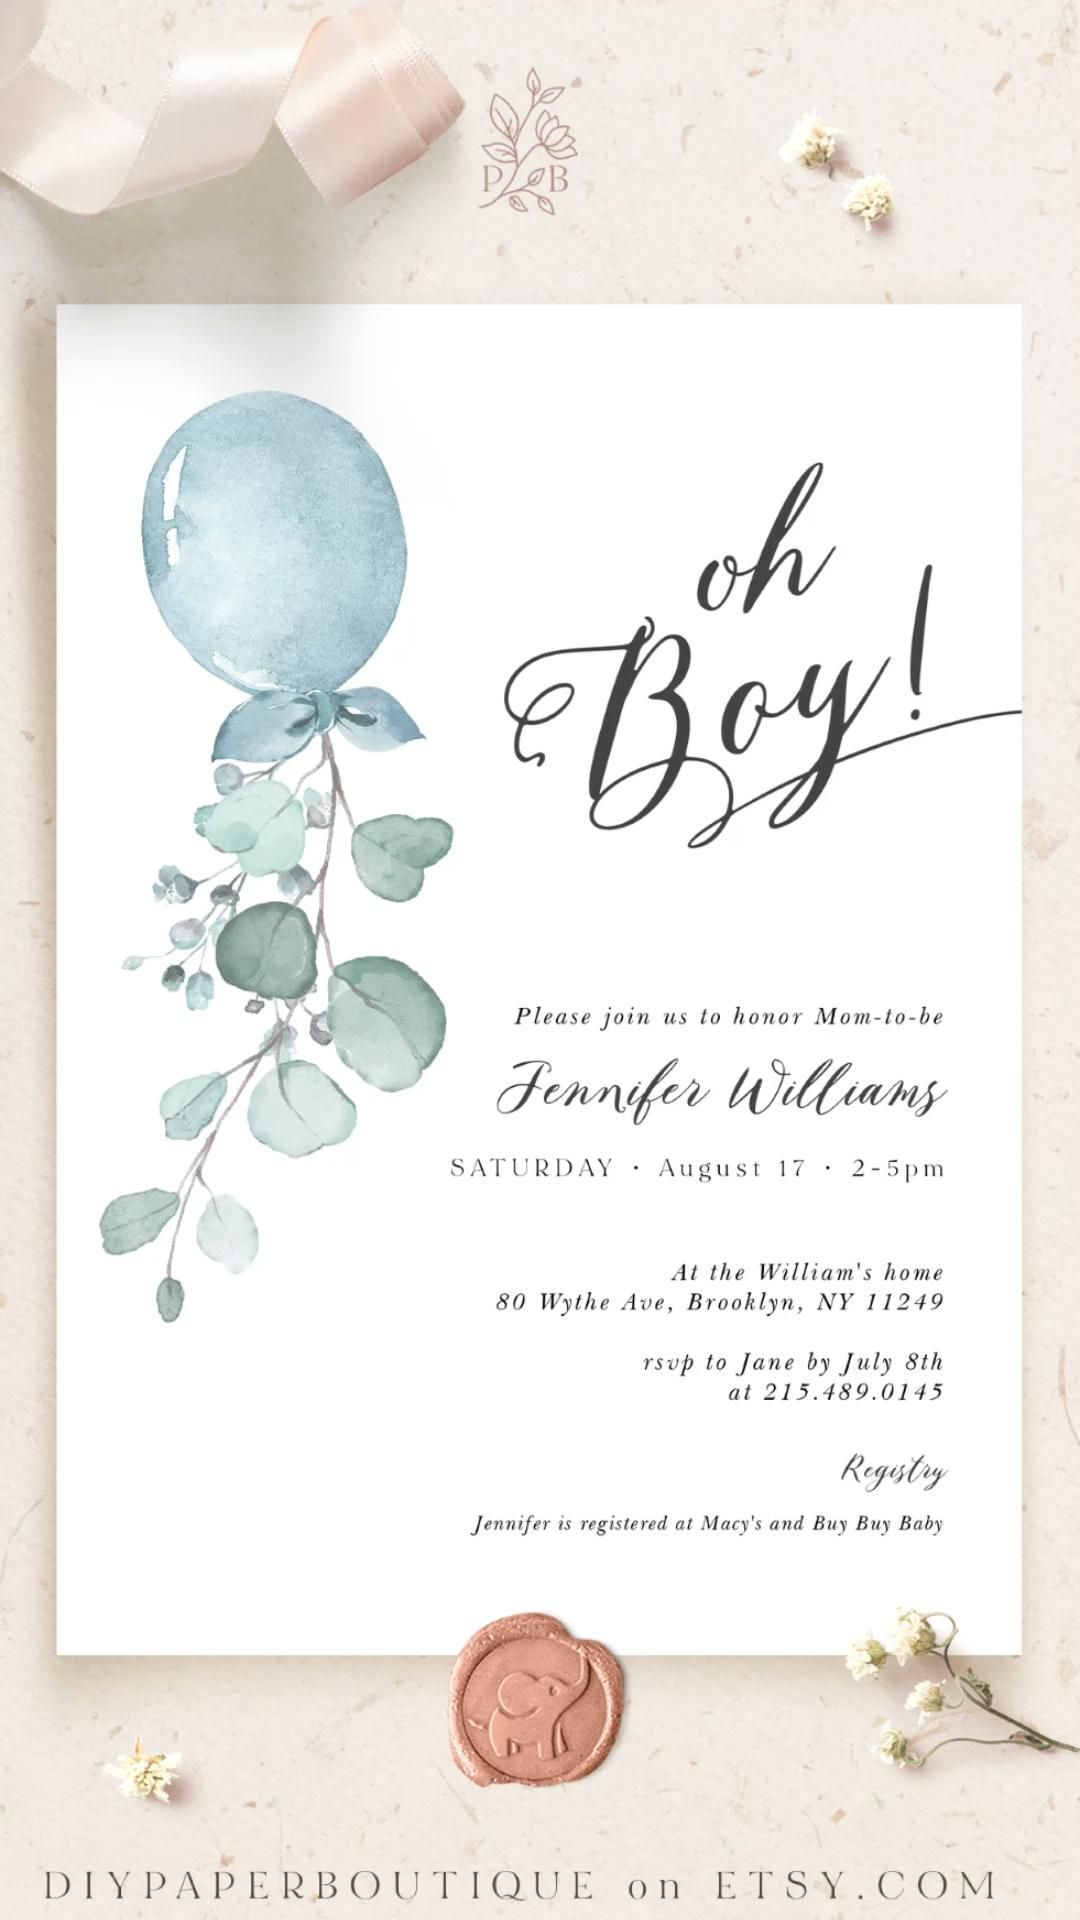 Oh Boy Baby Shower Invitation Balloon Baby Shower Template Etsy In 2021 Baby Shower Balloons Boho Baby Shower Invitations Baby Shower Invitations Diy Diy baby shower invitation template